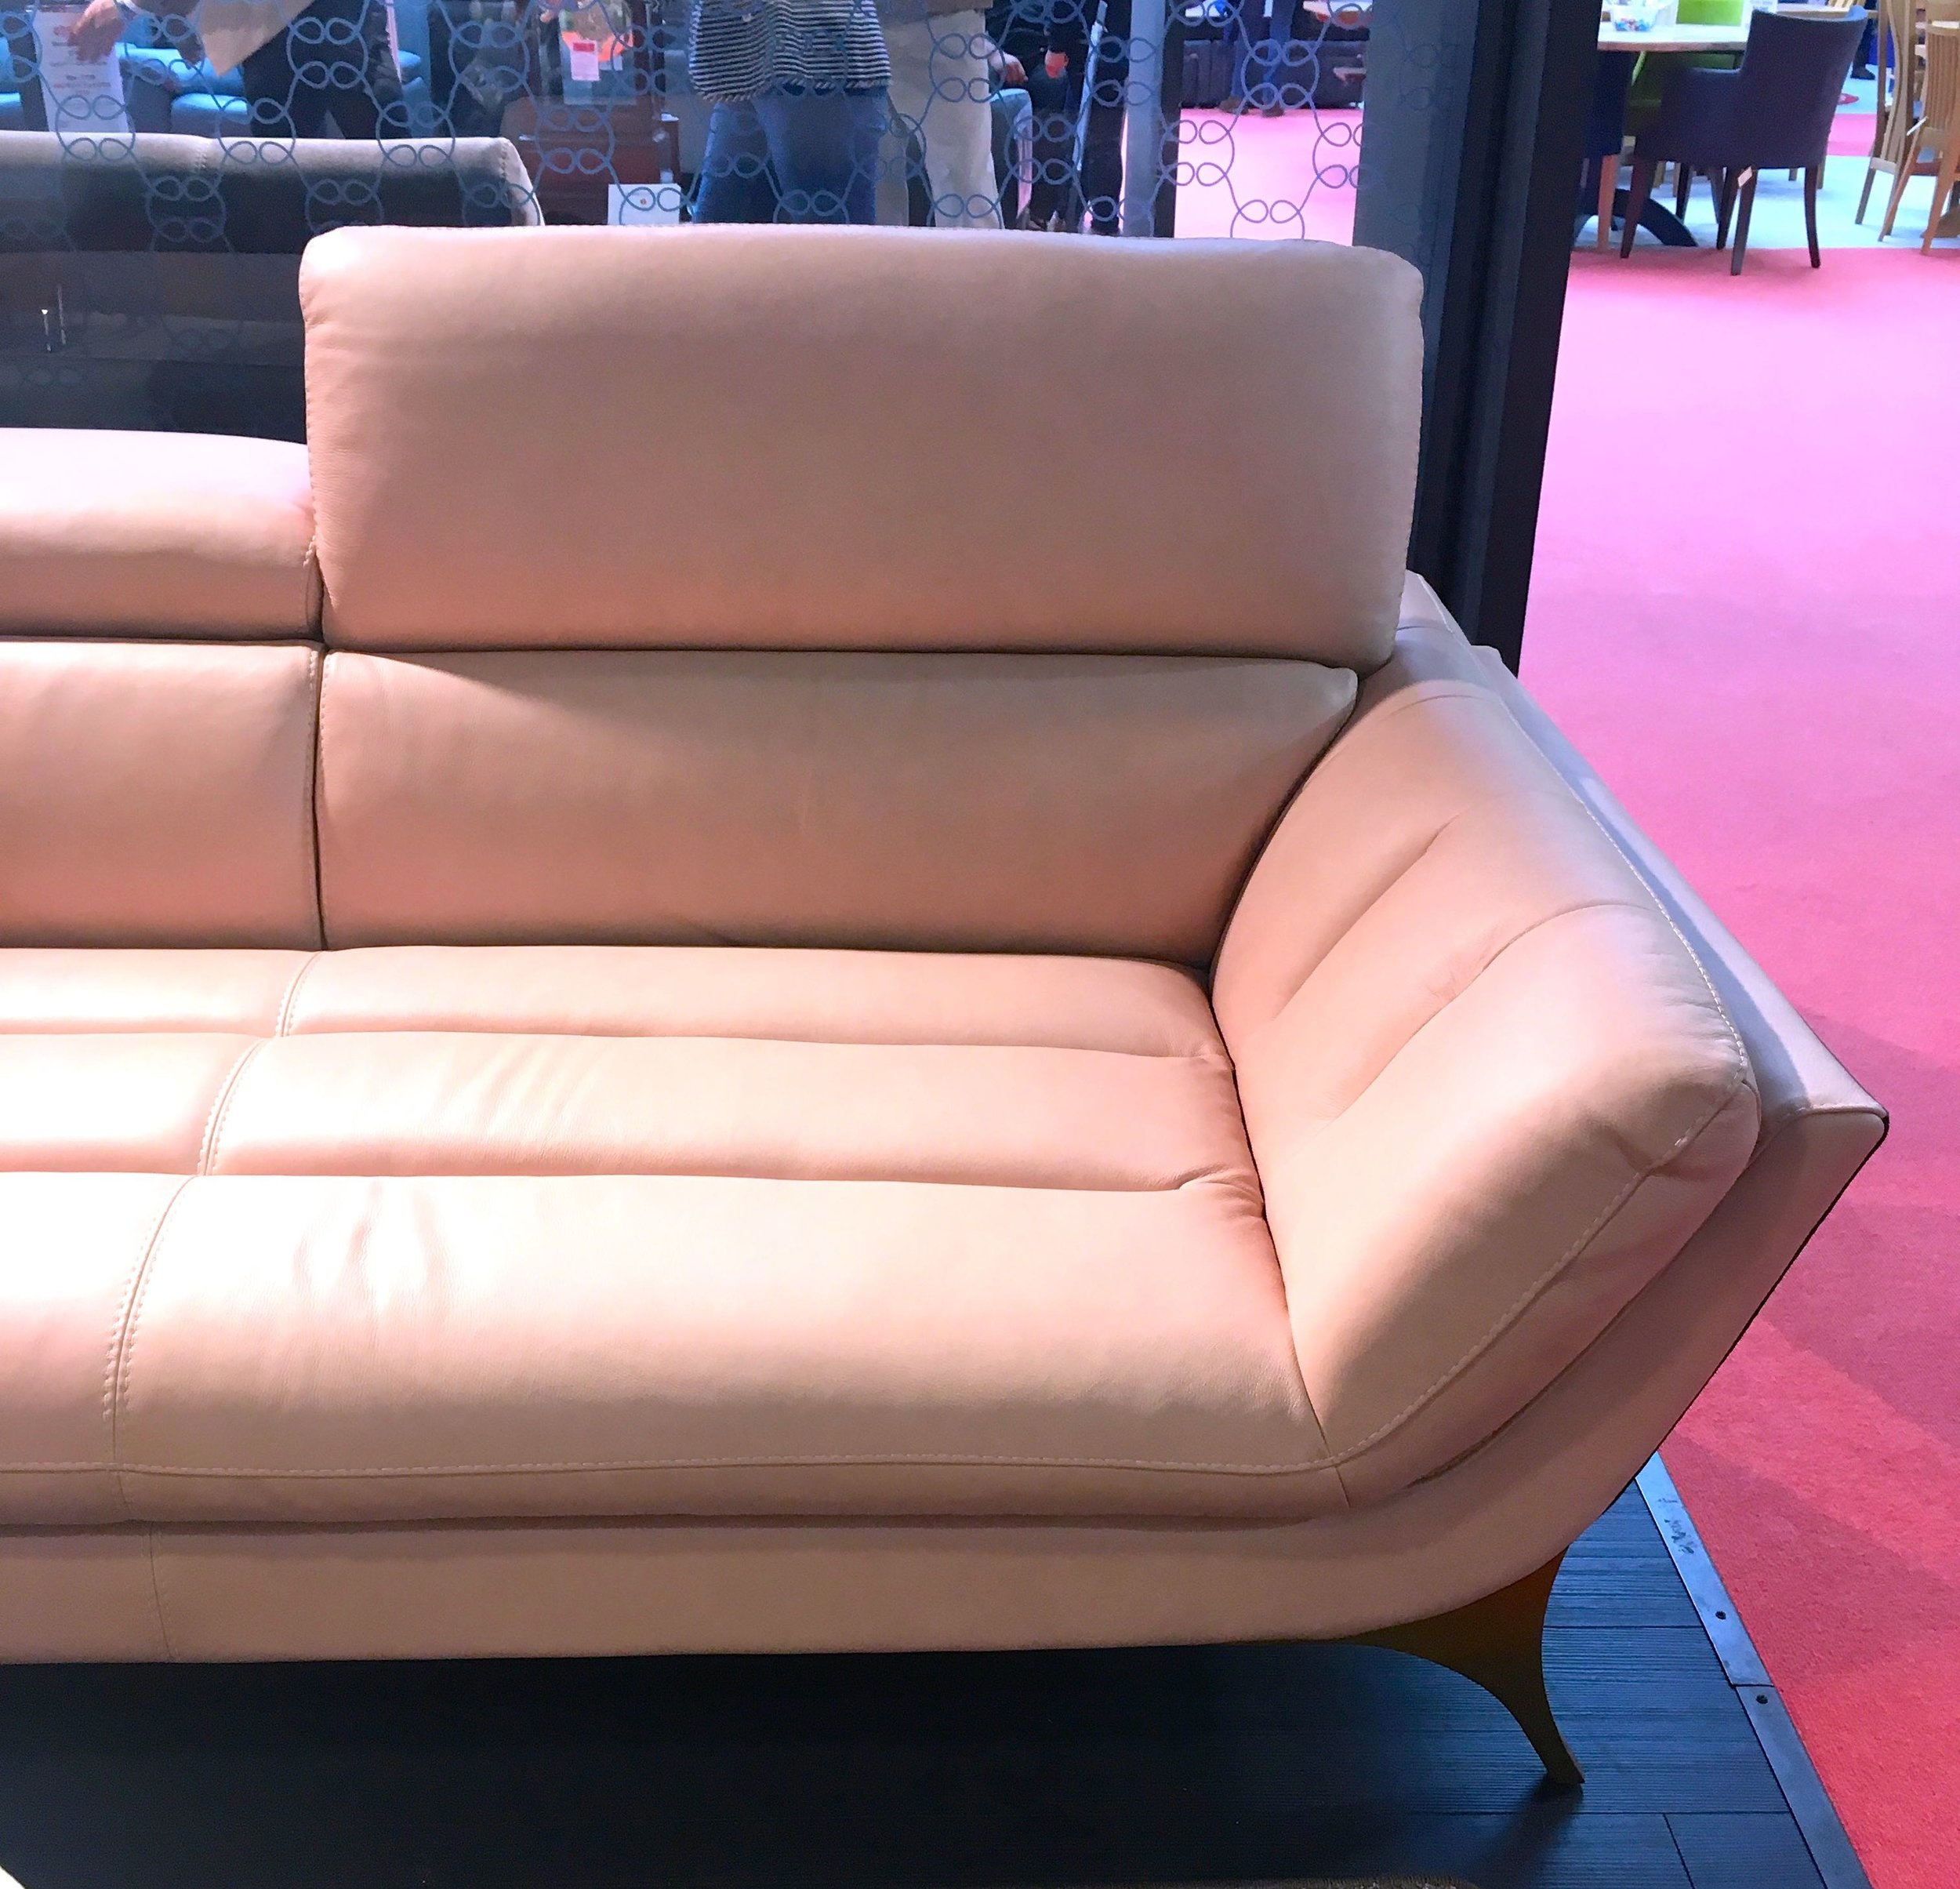 A PINK SOFA IN THE INTERIORS SECTION